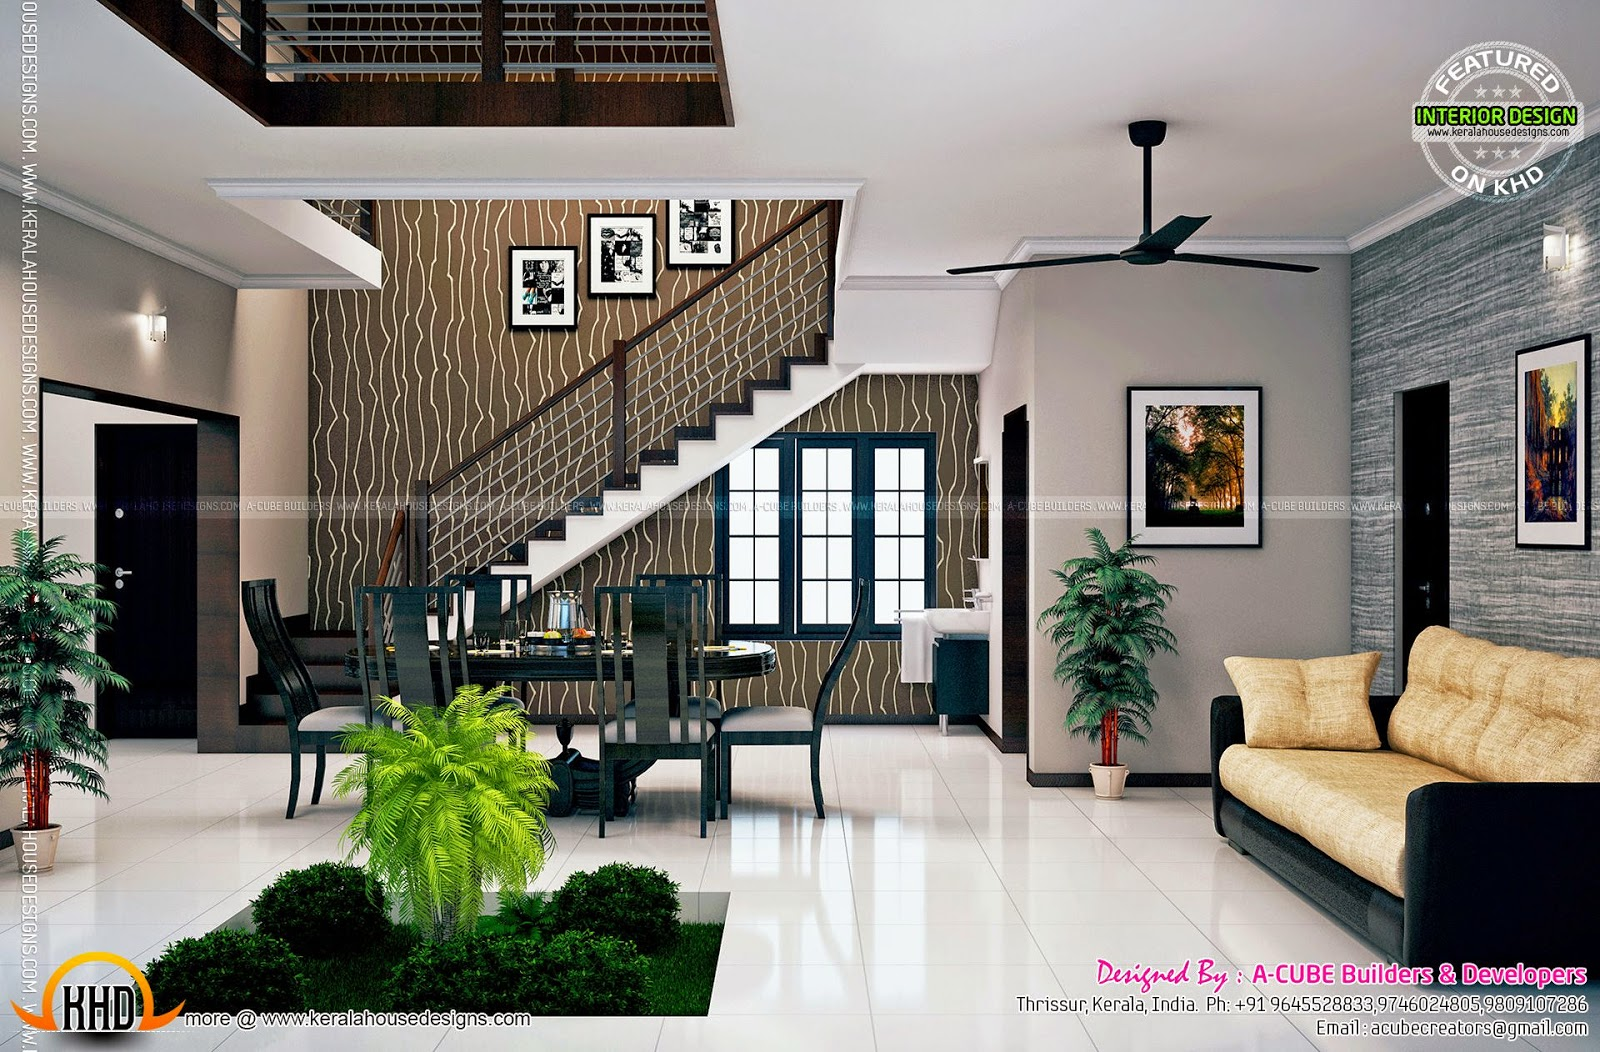 Kerala interior design ideas kerala home design and for Living room designs kerala style